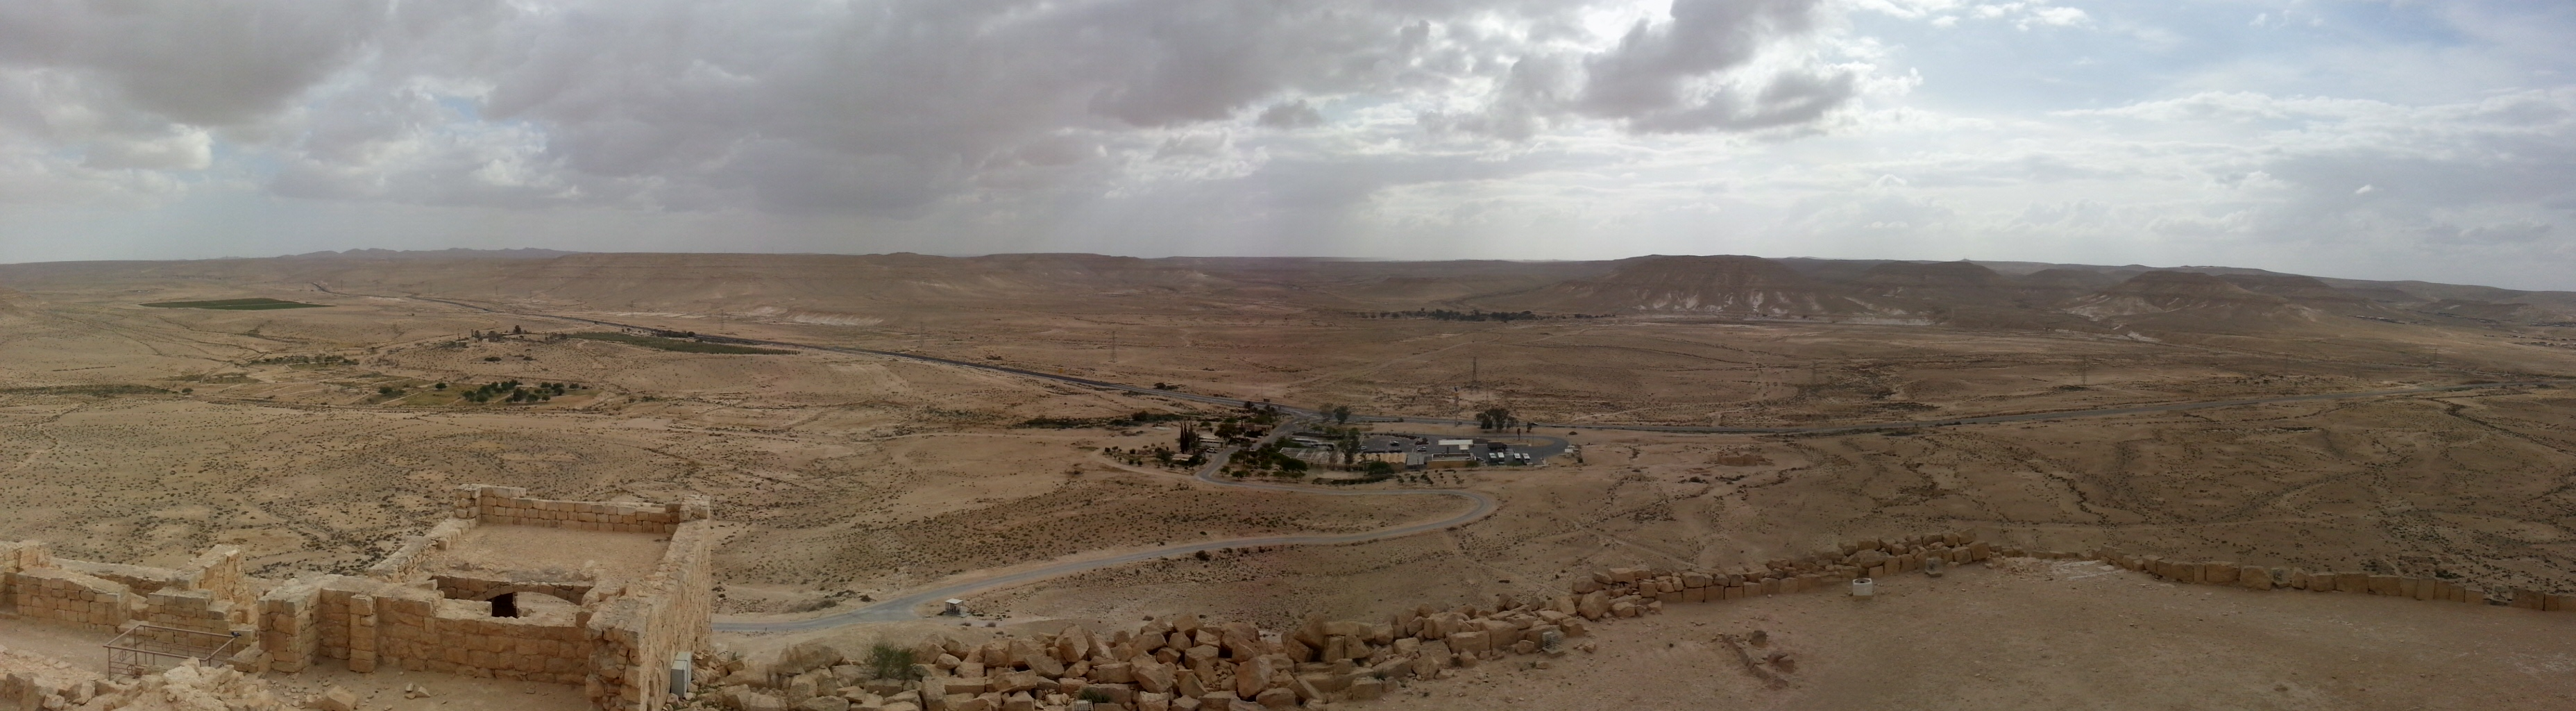 View from Avdat - note the greenery to the left coming from revival of ancient irrigation techniques